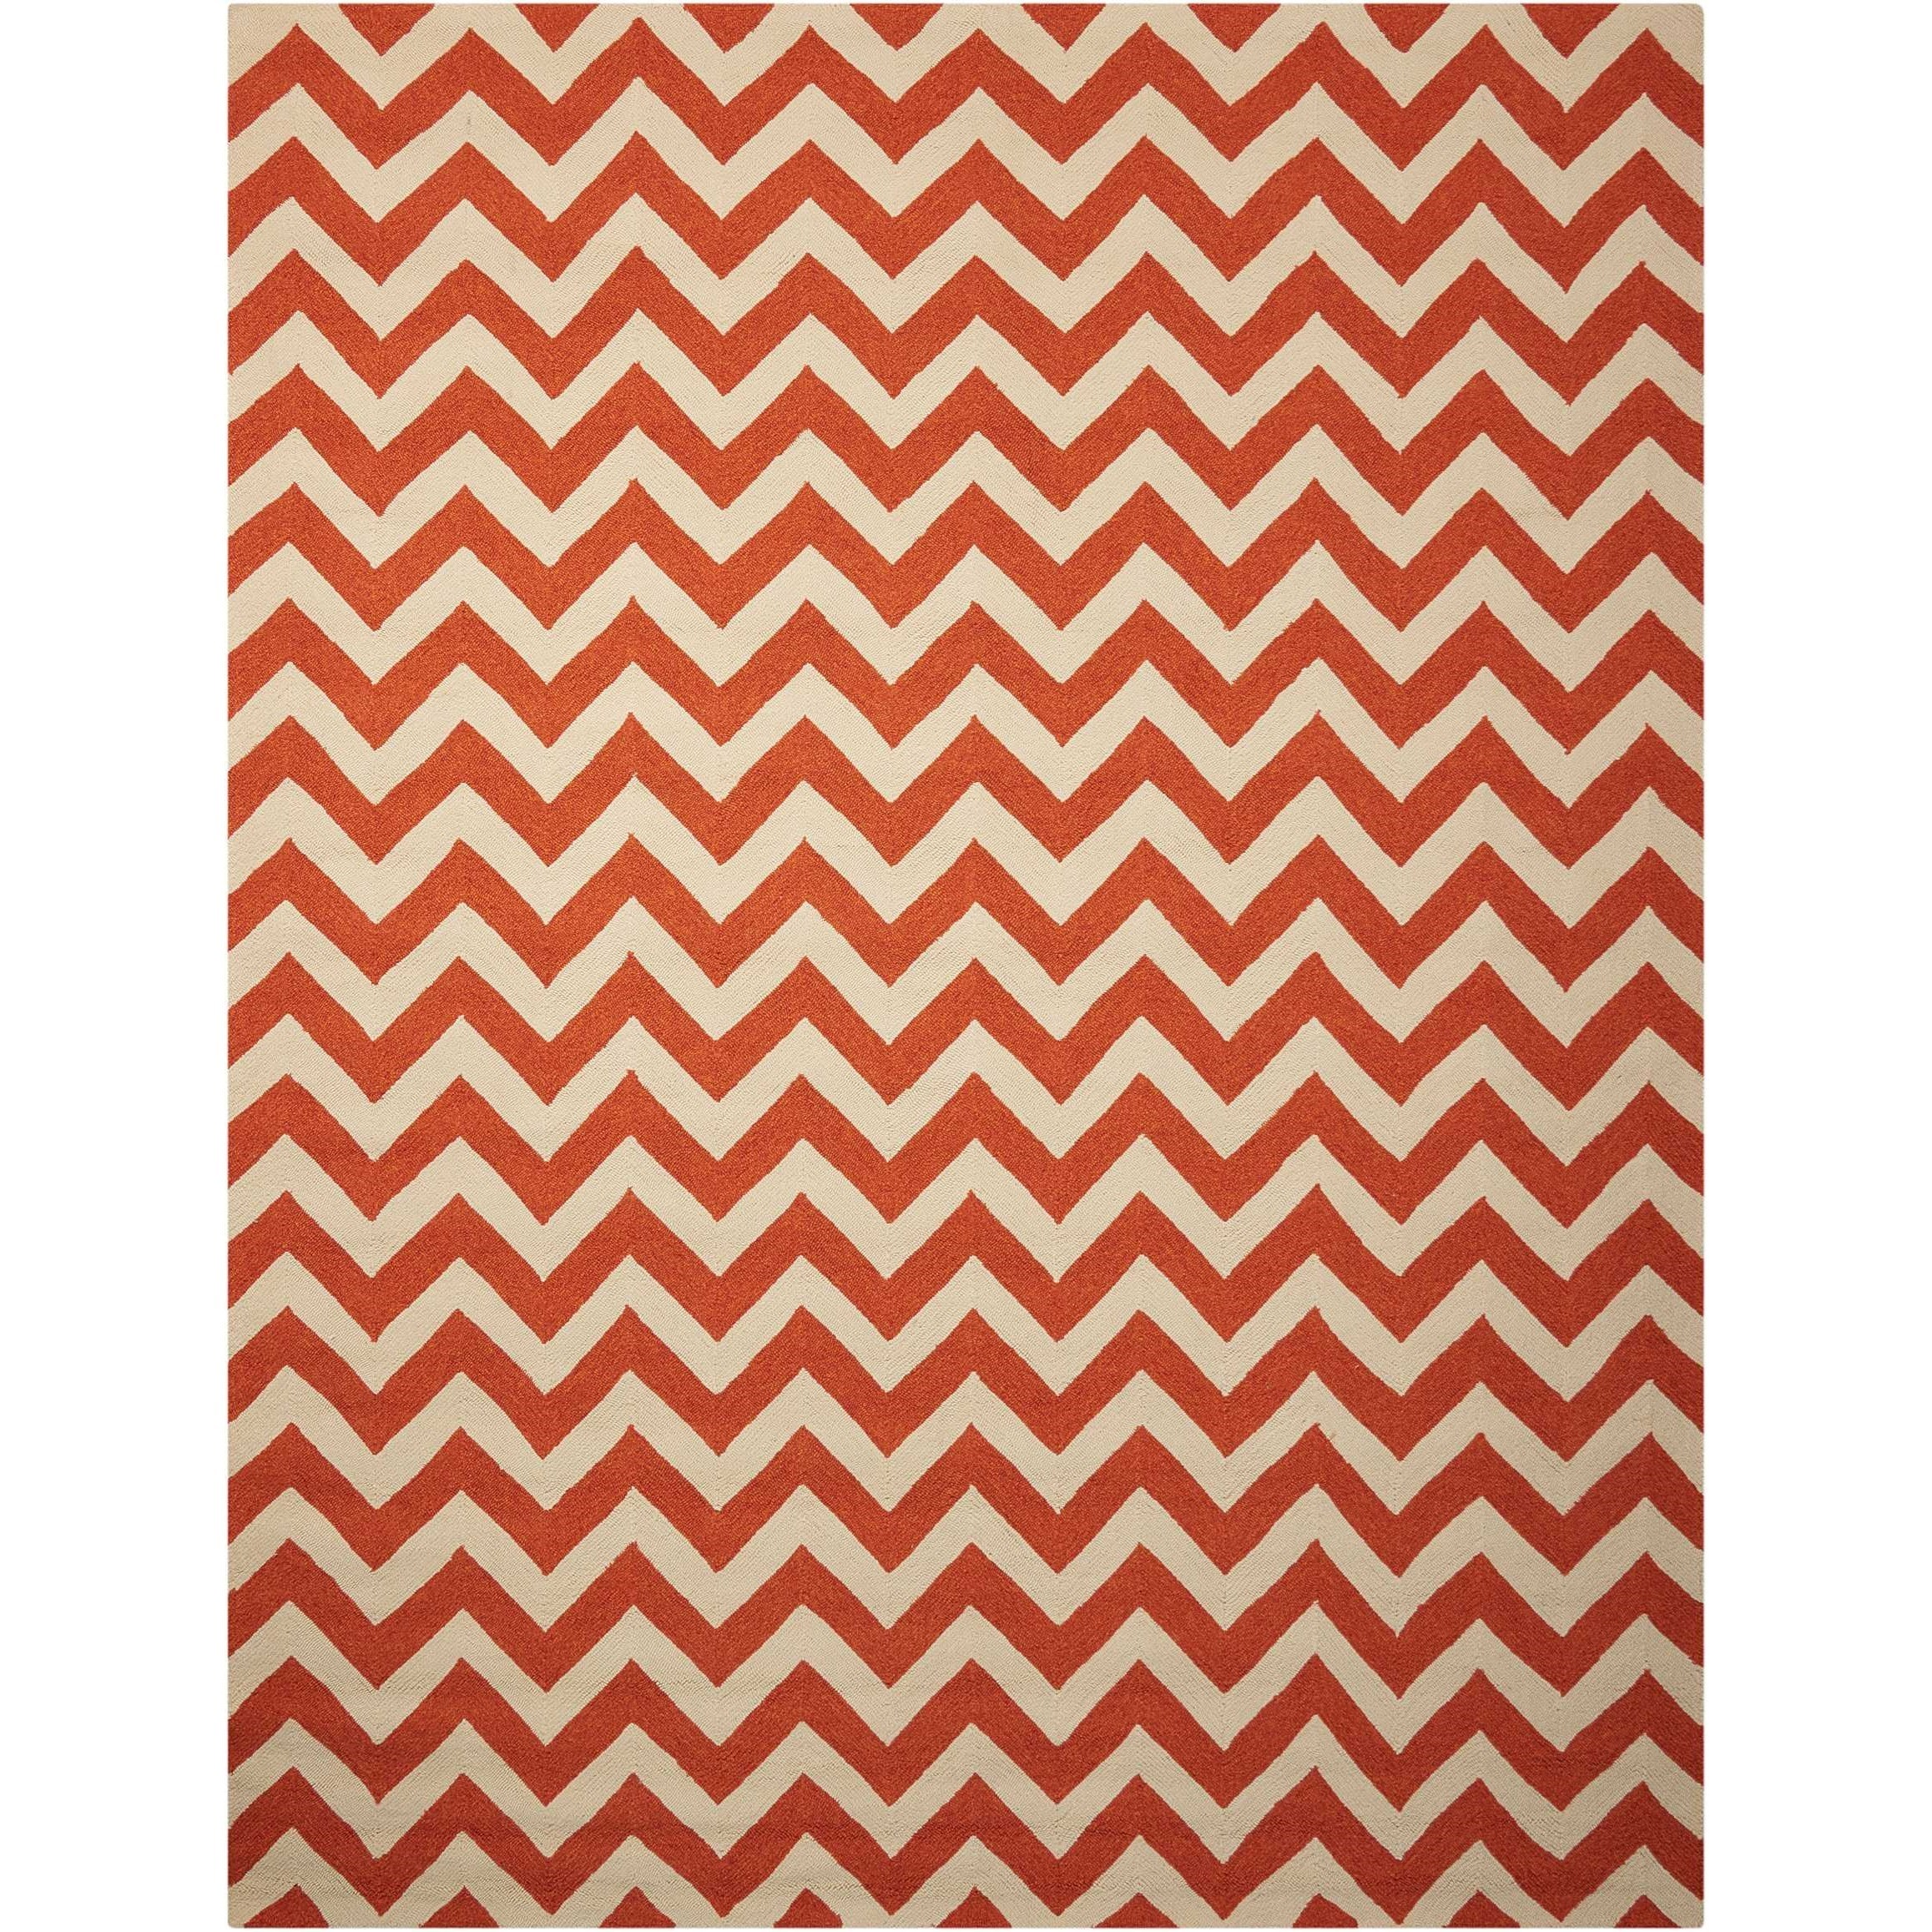 """Portico 8' x 10'6"""" Orange Rectangle Rug by Nourison at Home Collections Furniture"""